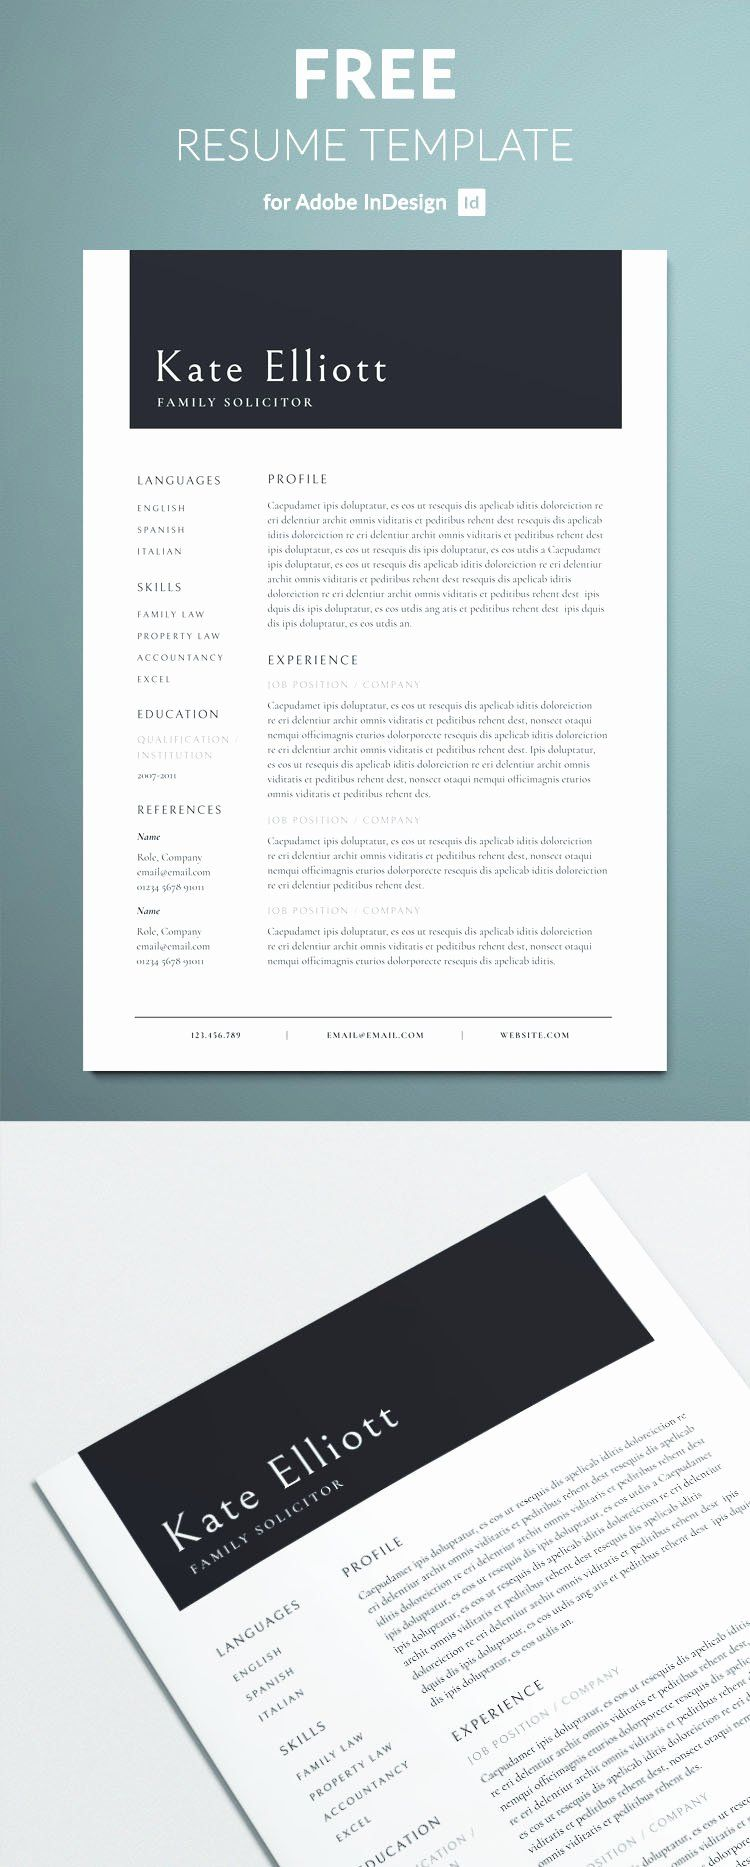 25 Professional Resume Template Free in 2020 Resume